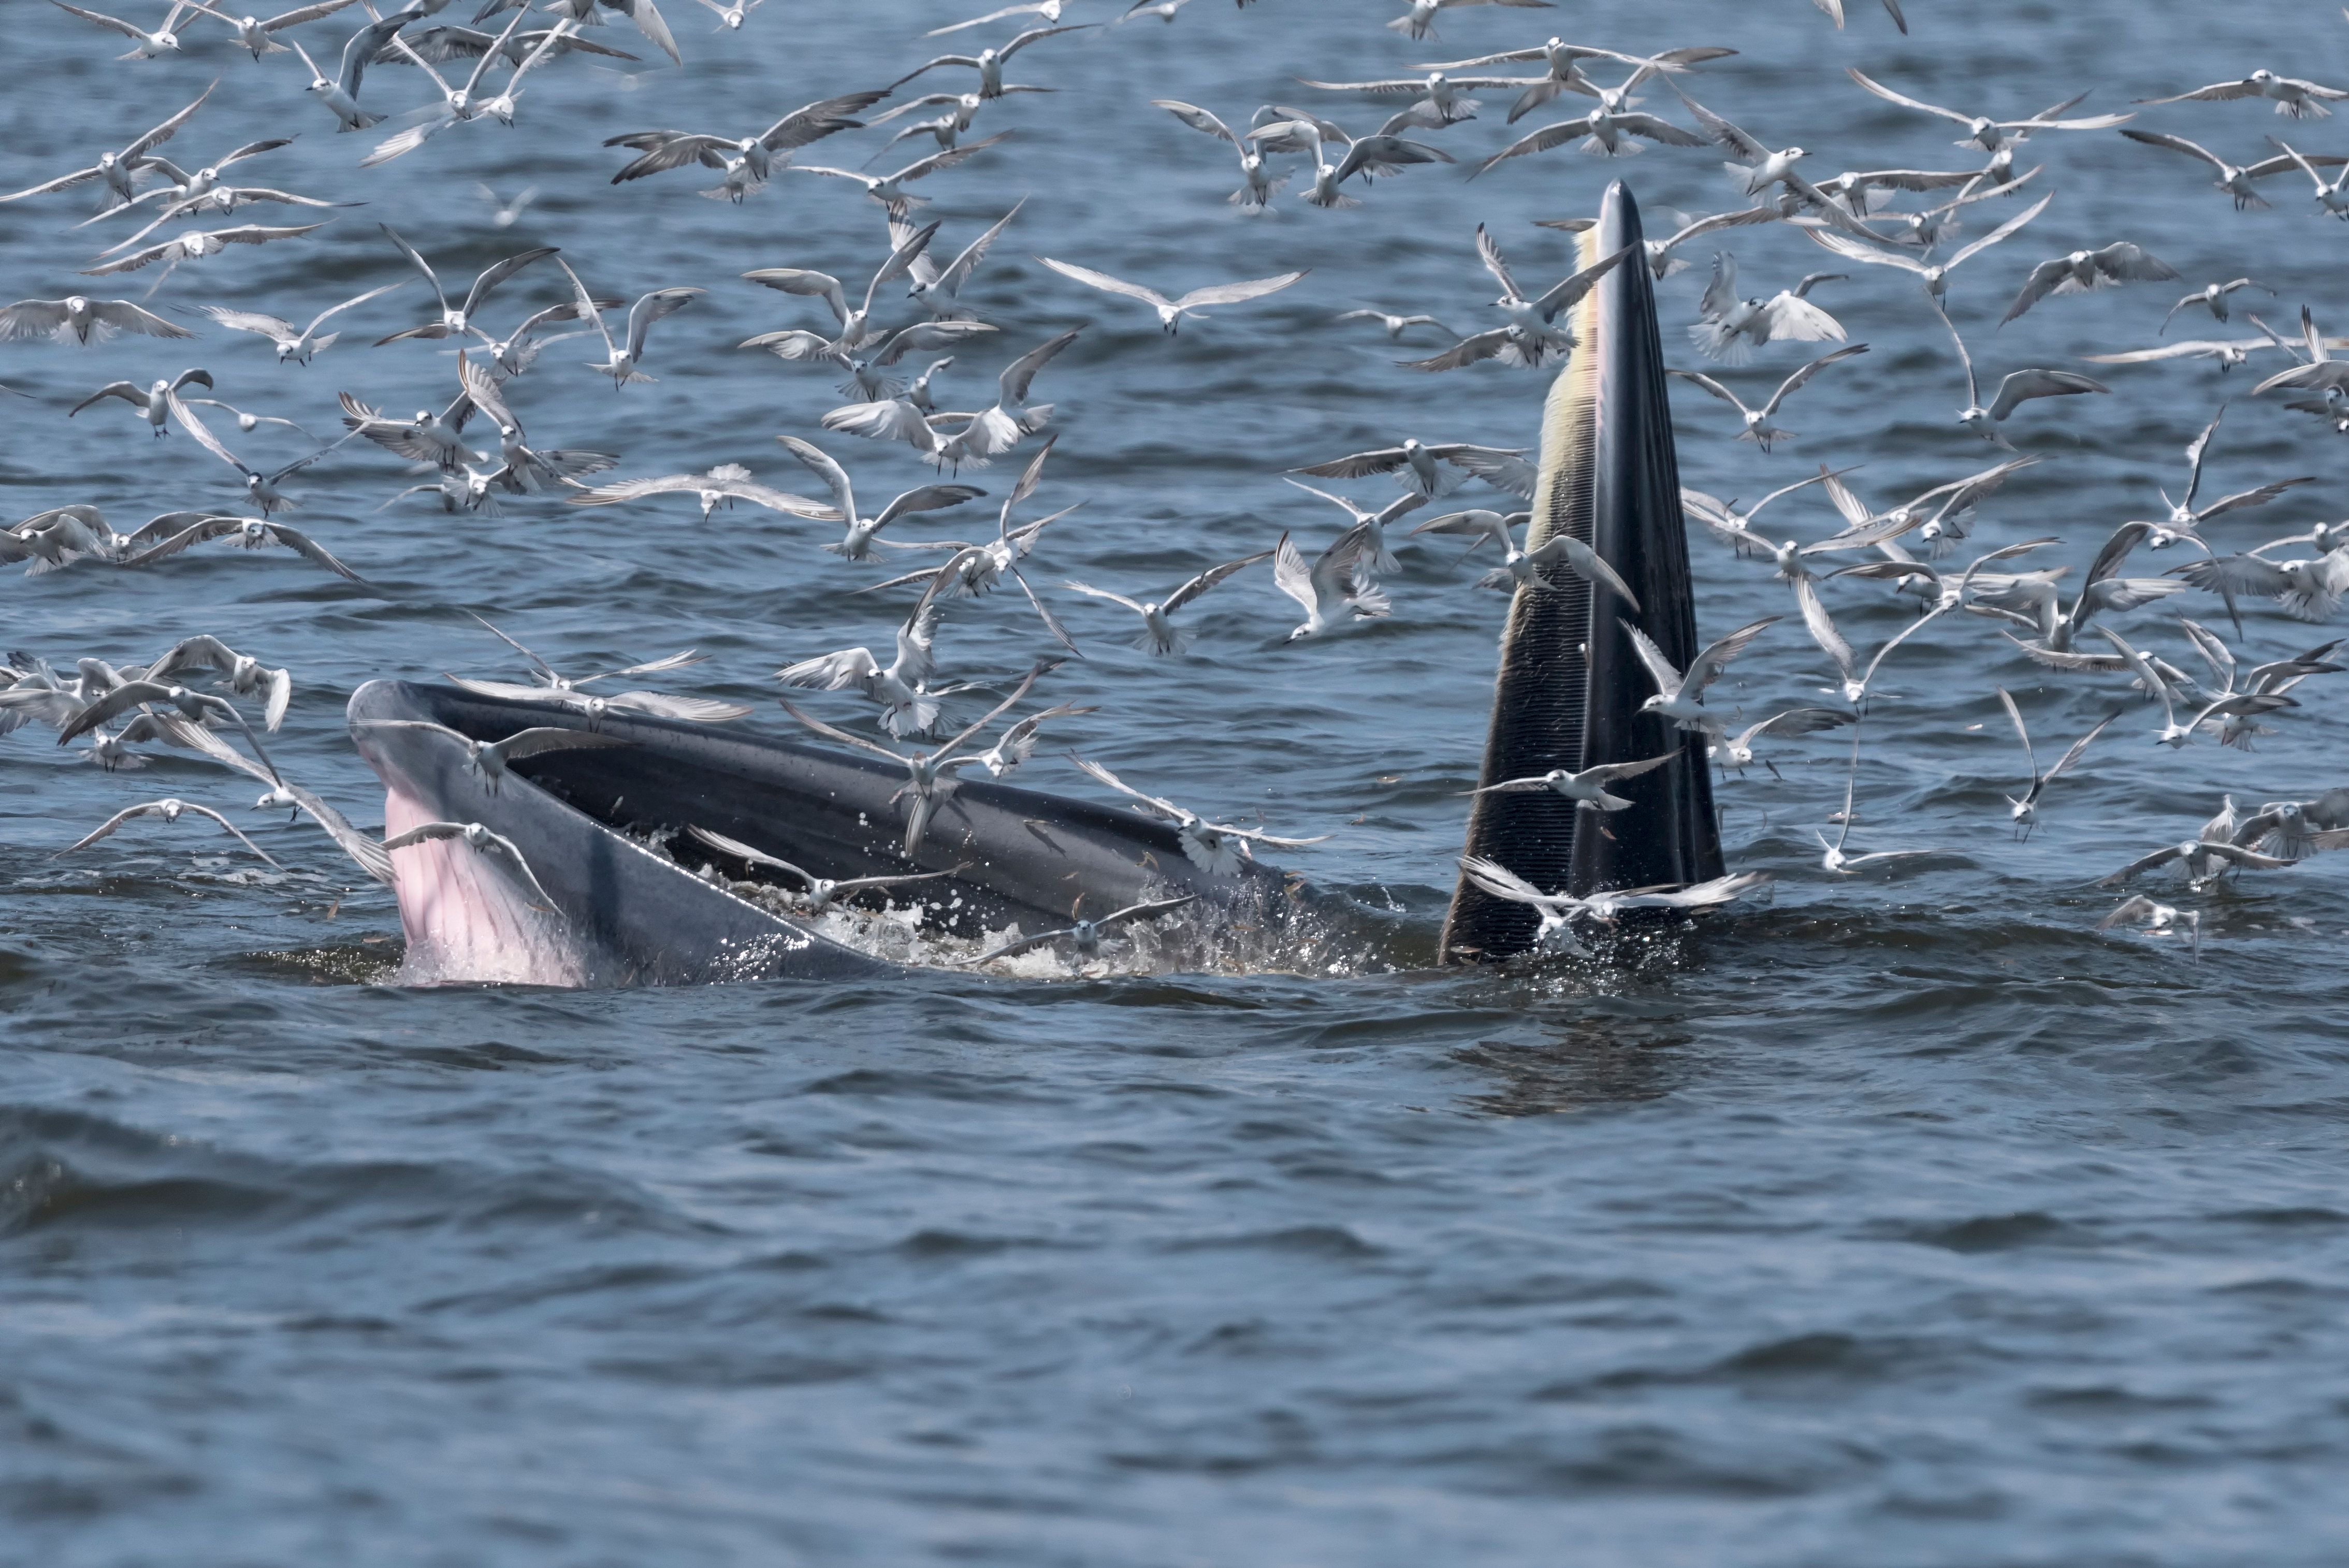 A Bryde's whale